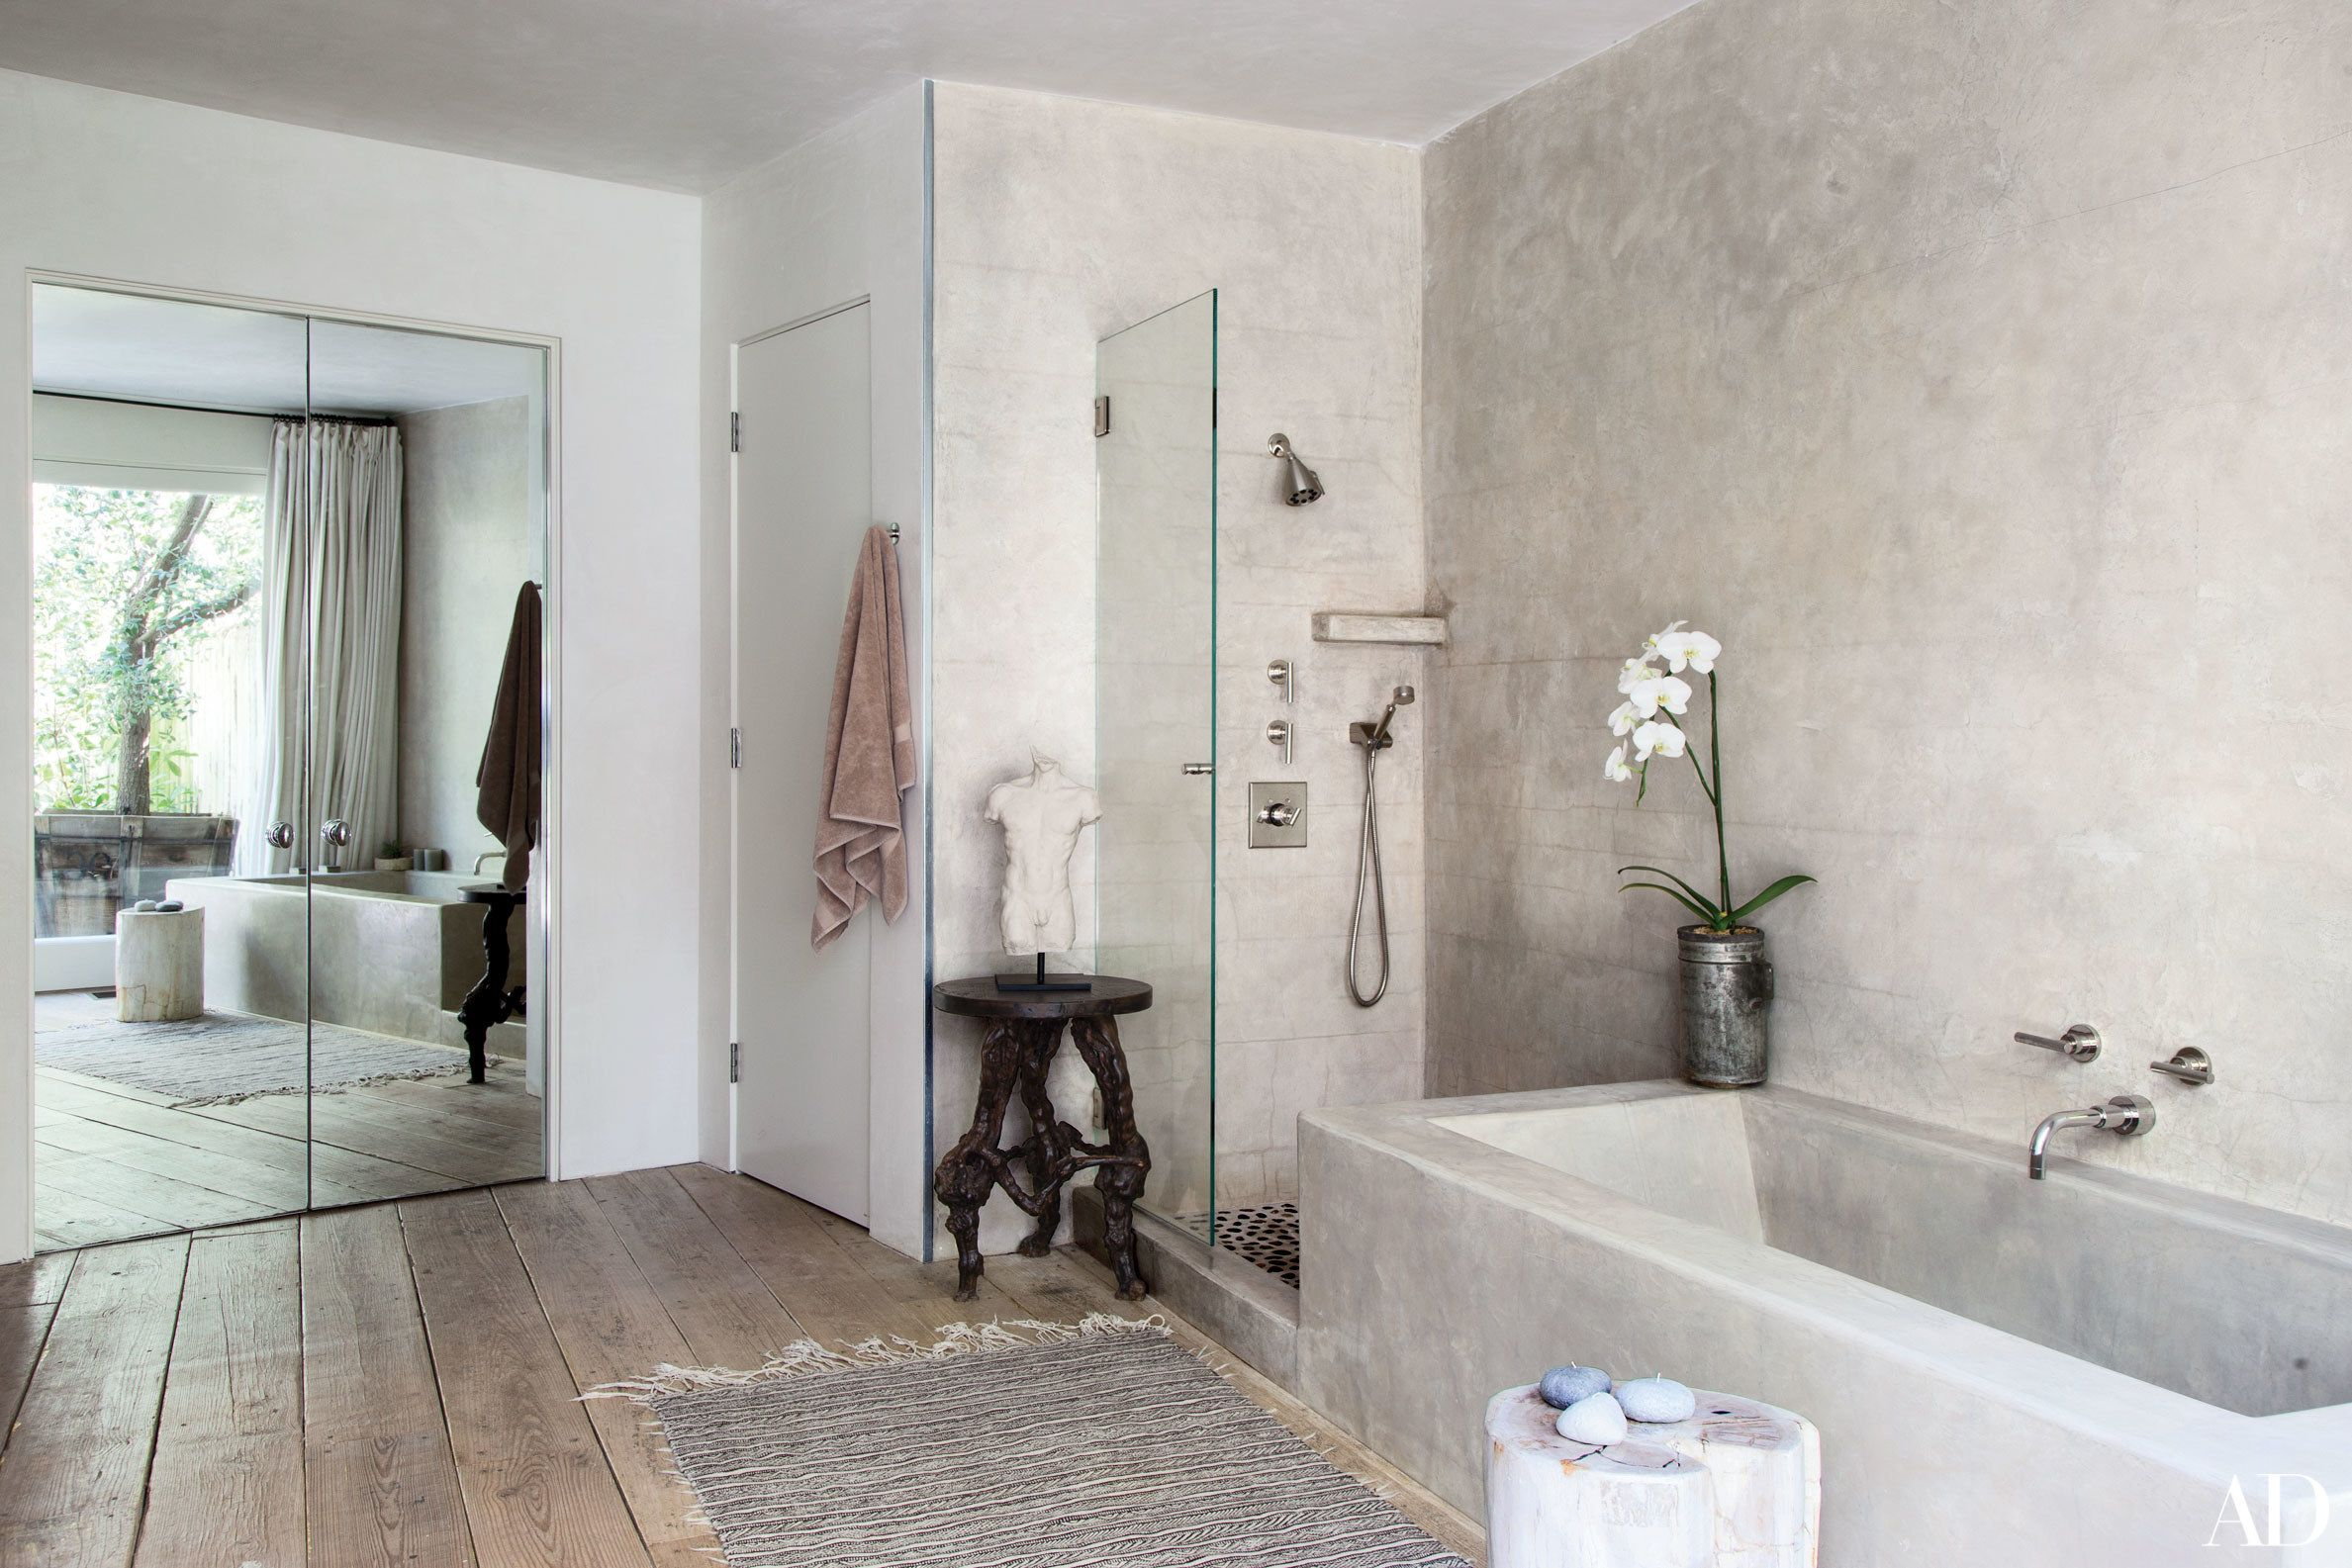 22 Luxury Bathrooms In Celebrity Homes  Architectural Digest Extraordinary Pictures Of Luxury Bathrooms Decorating Inspiration